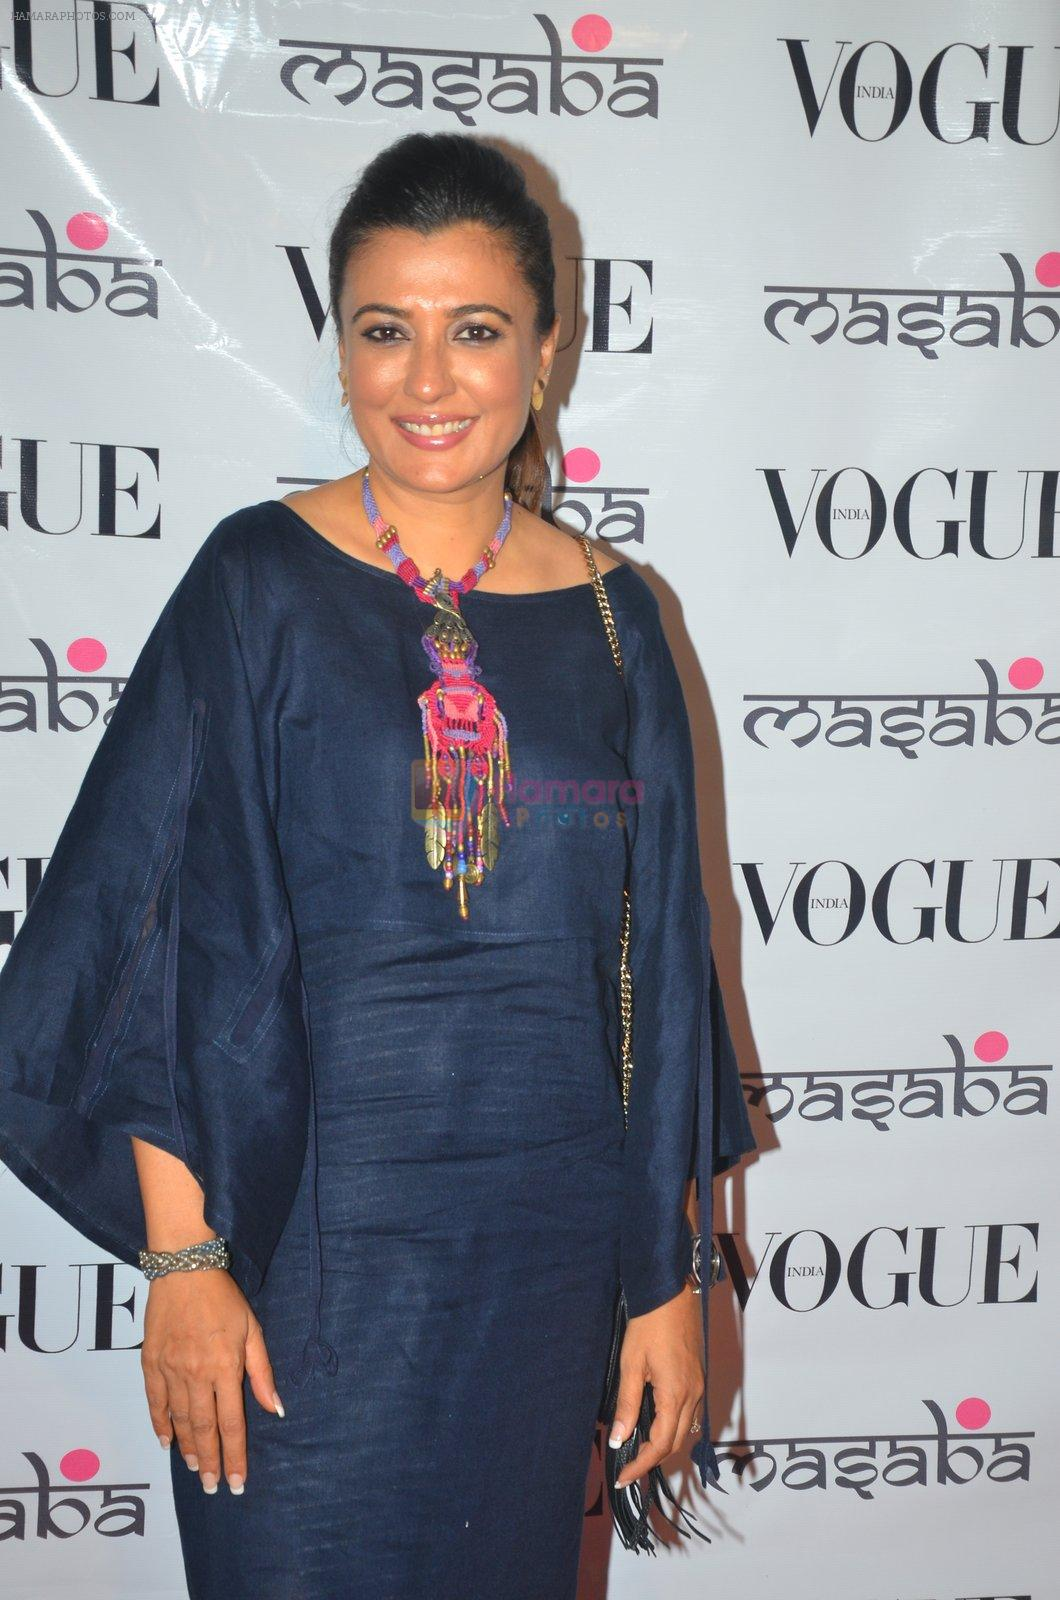 Mini Mathur at Masaba's store in Mumbai on 20th Aug 2016